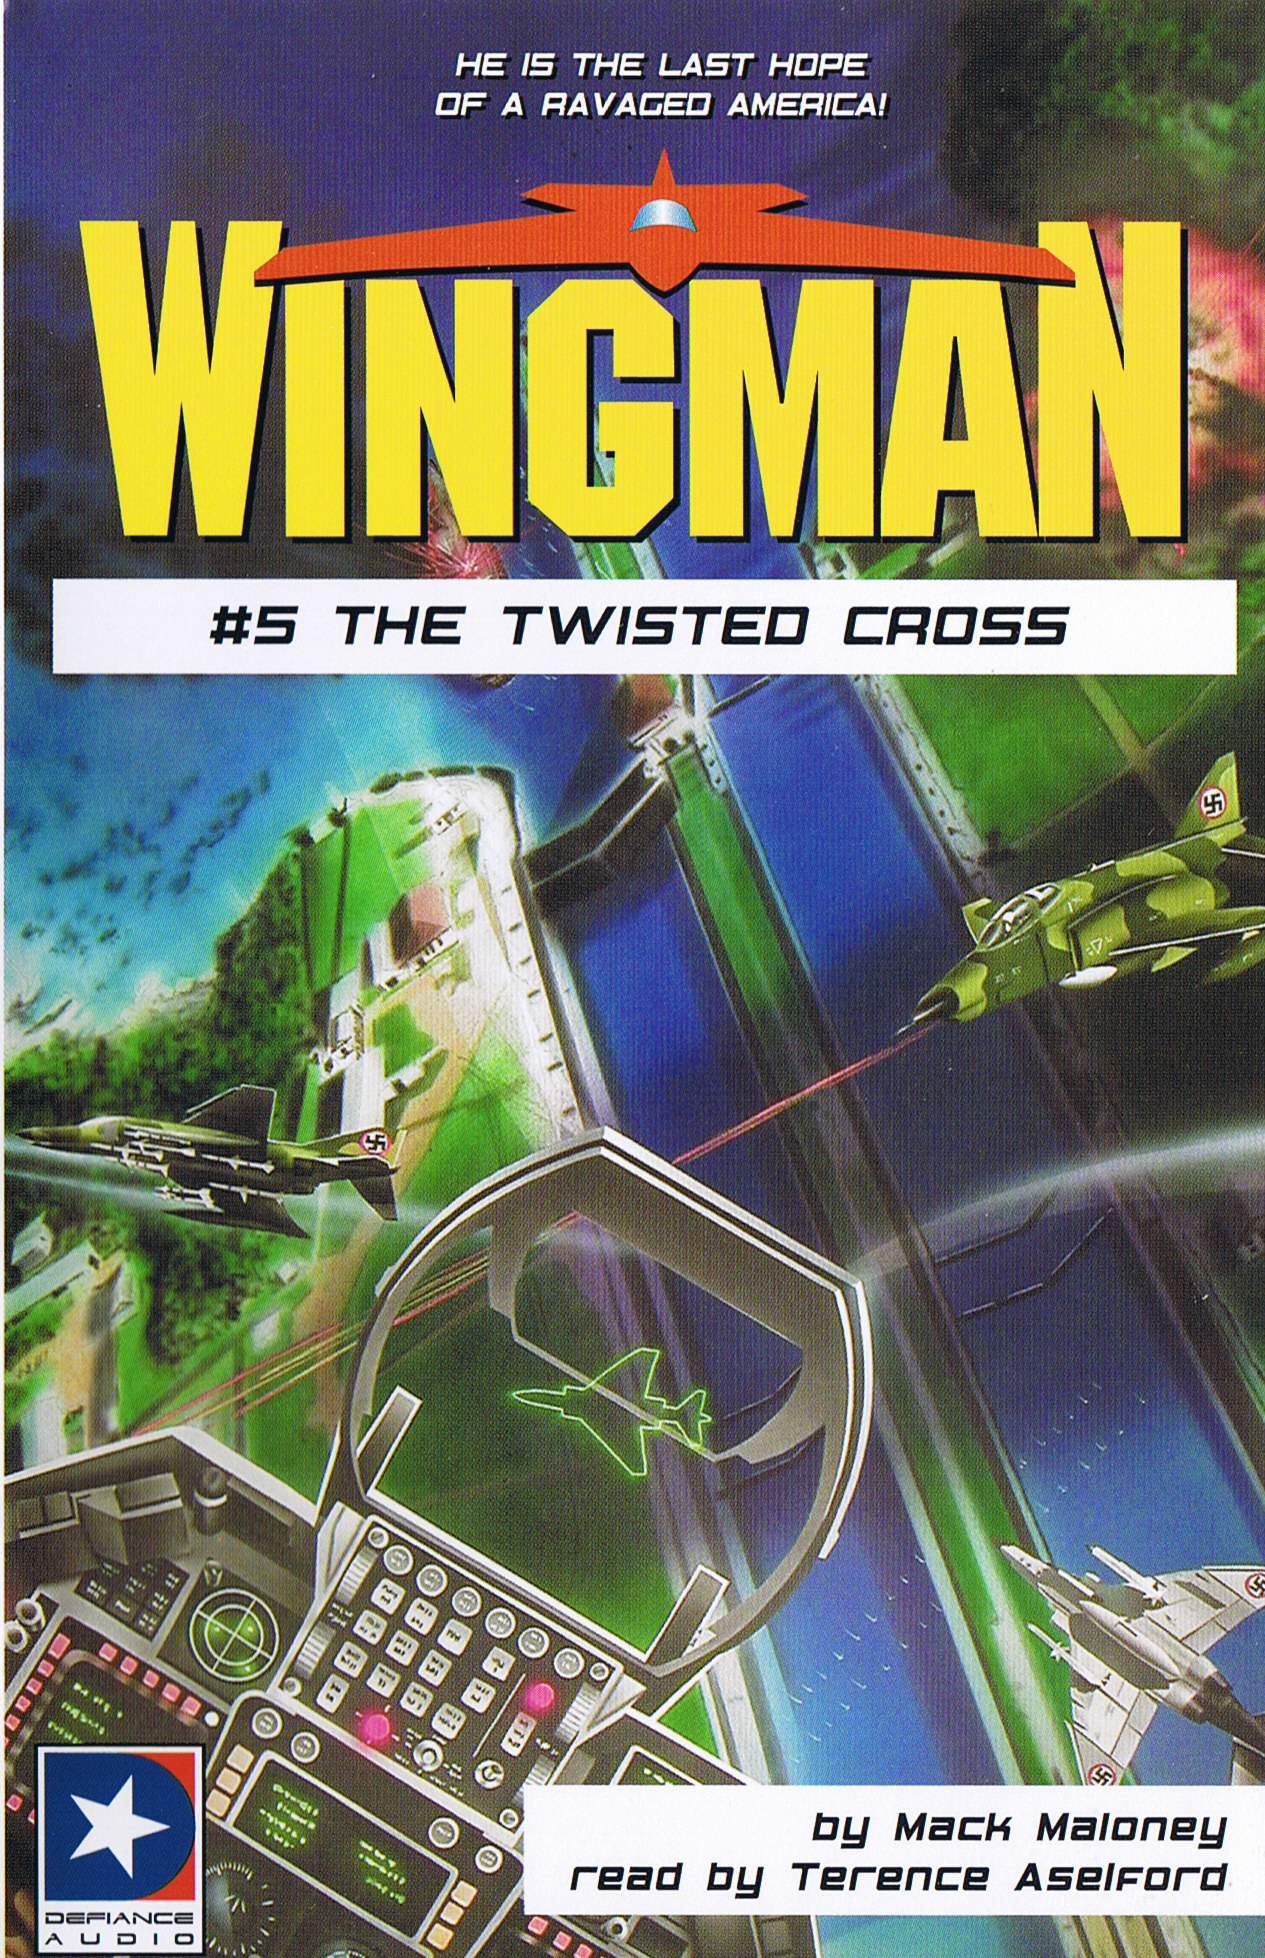 Wingman # 5 - The Twisted Cross [DD]